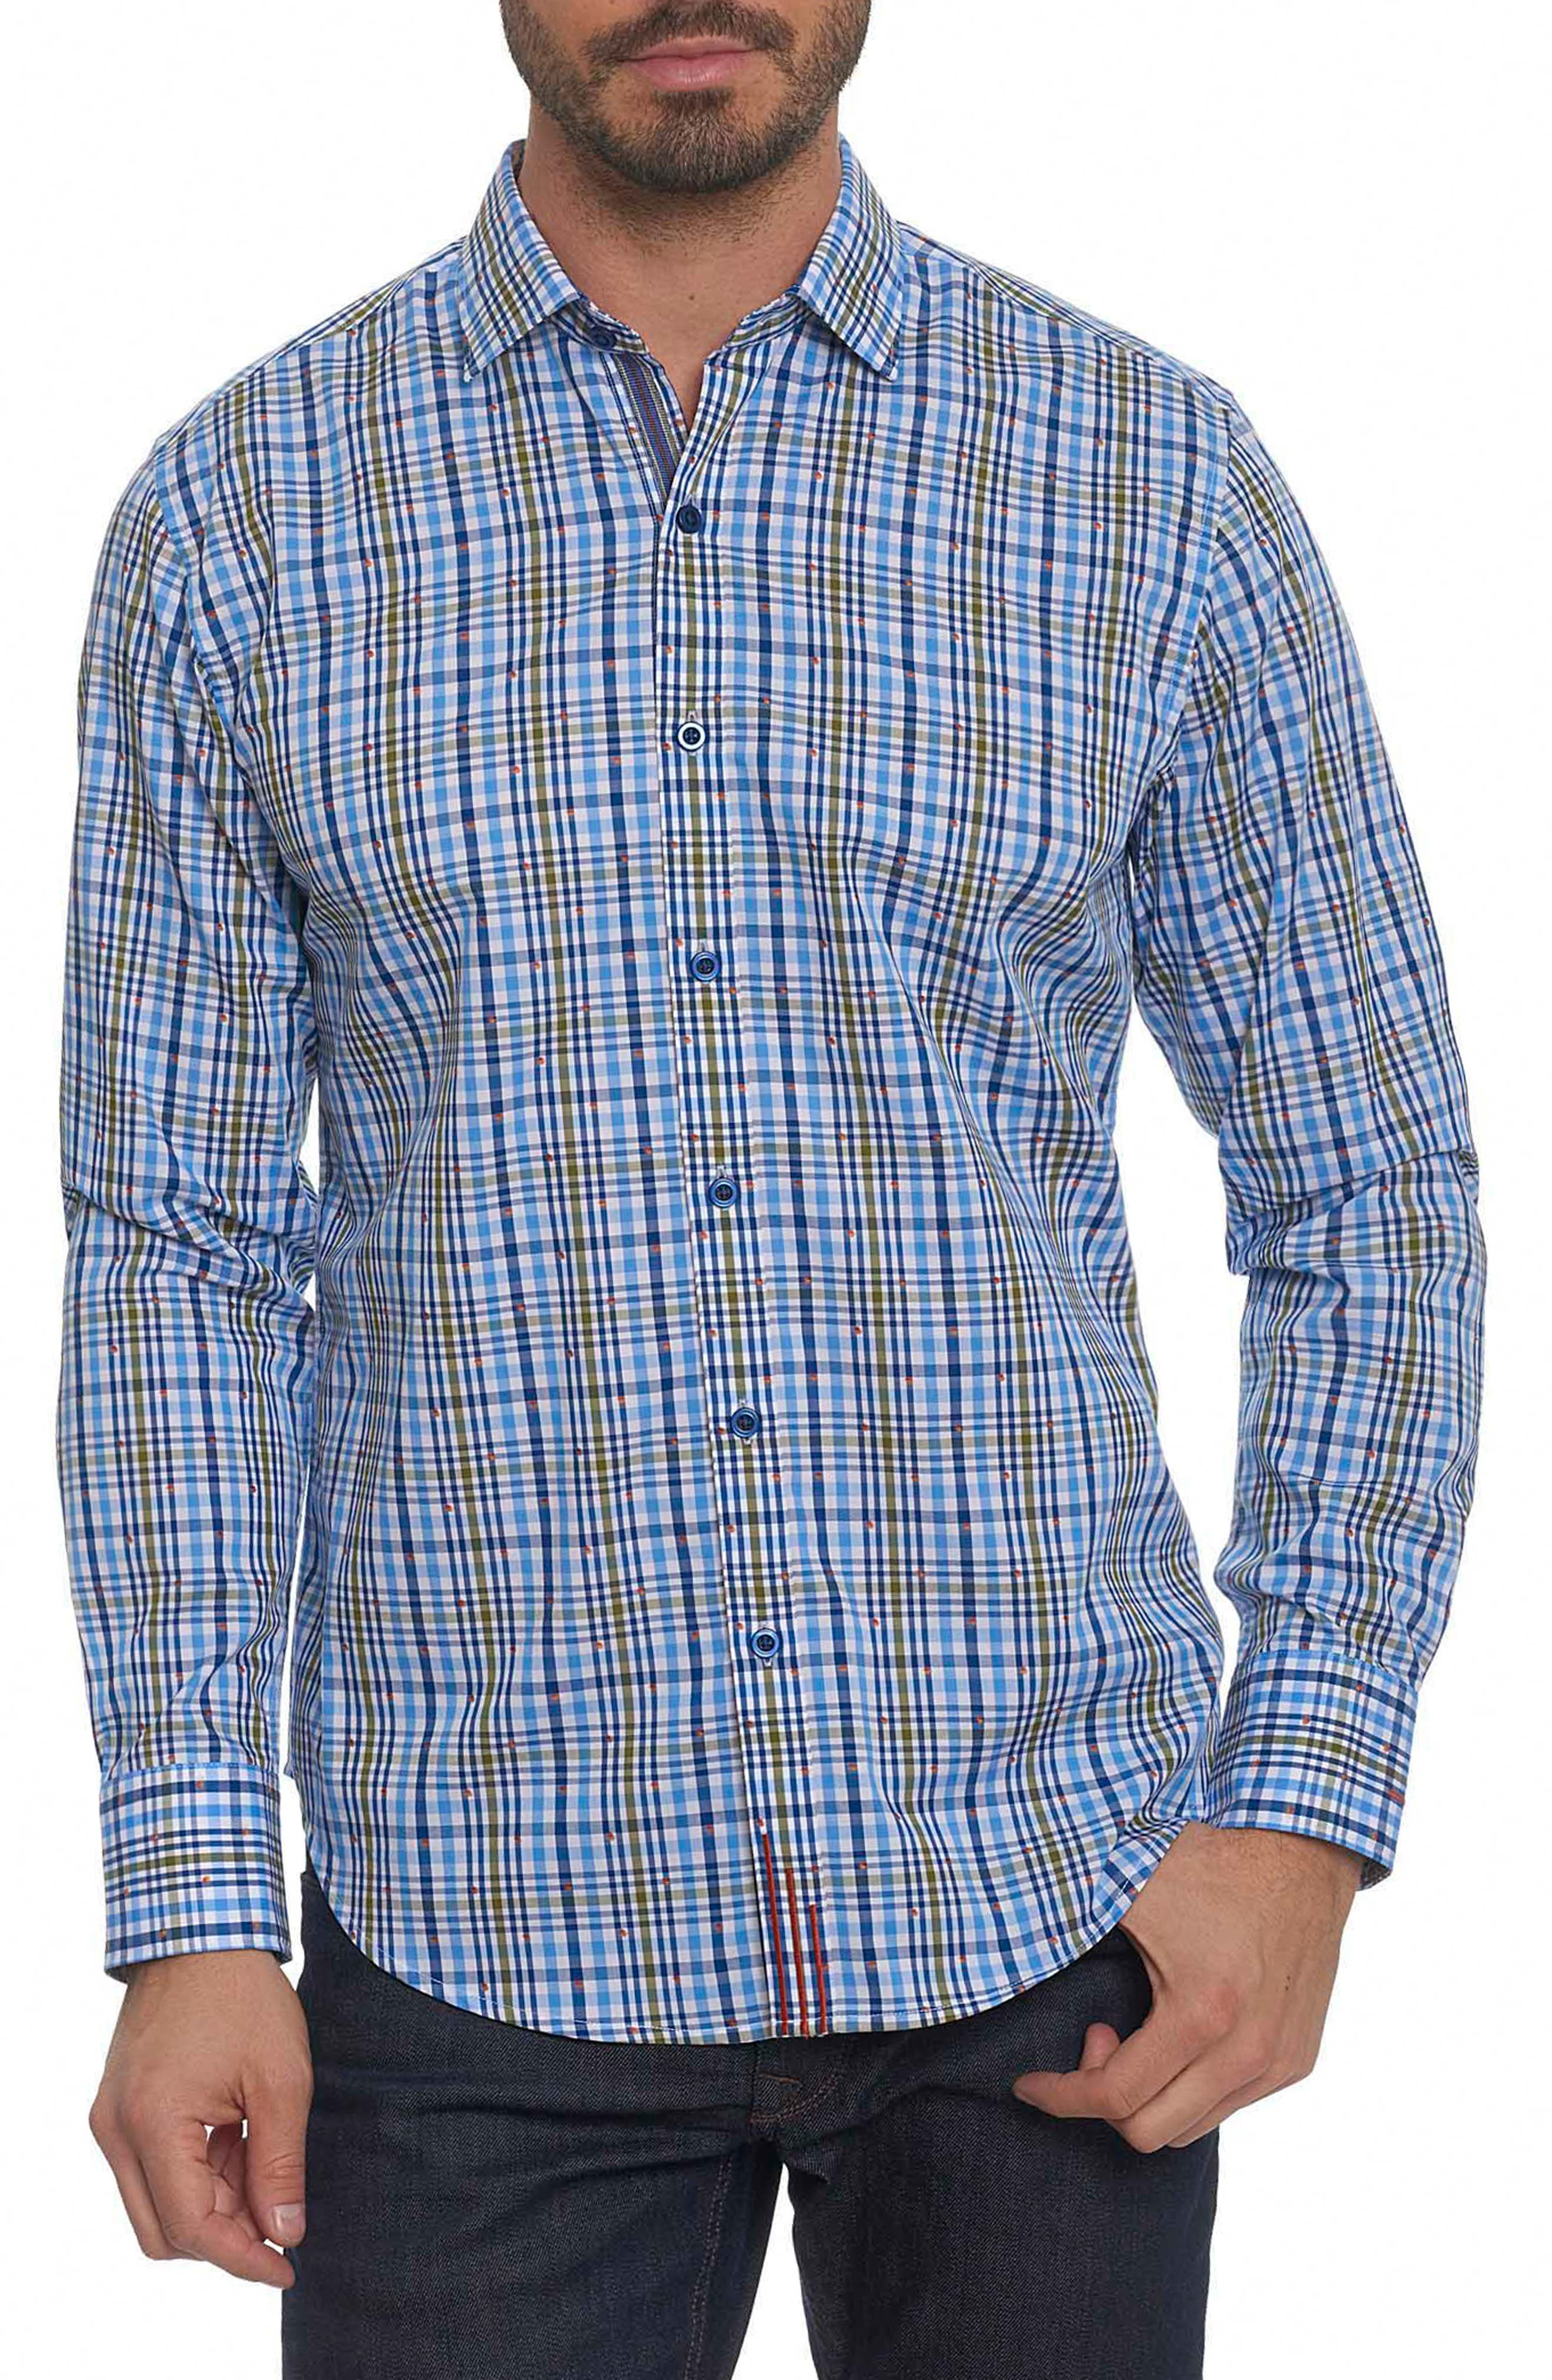 Cape Vincent Classic Fit Dobby Check Sport Shirt,                             Main thumbnail 1, color,                             Blue